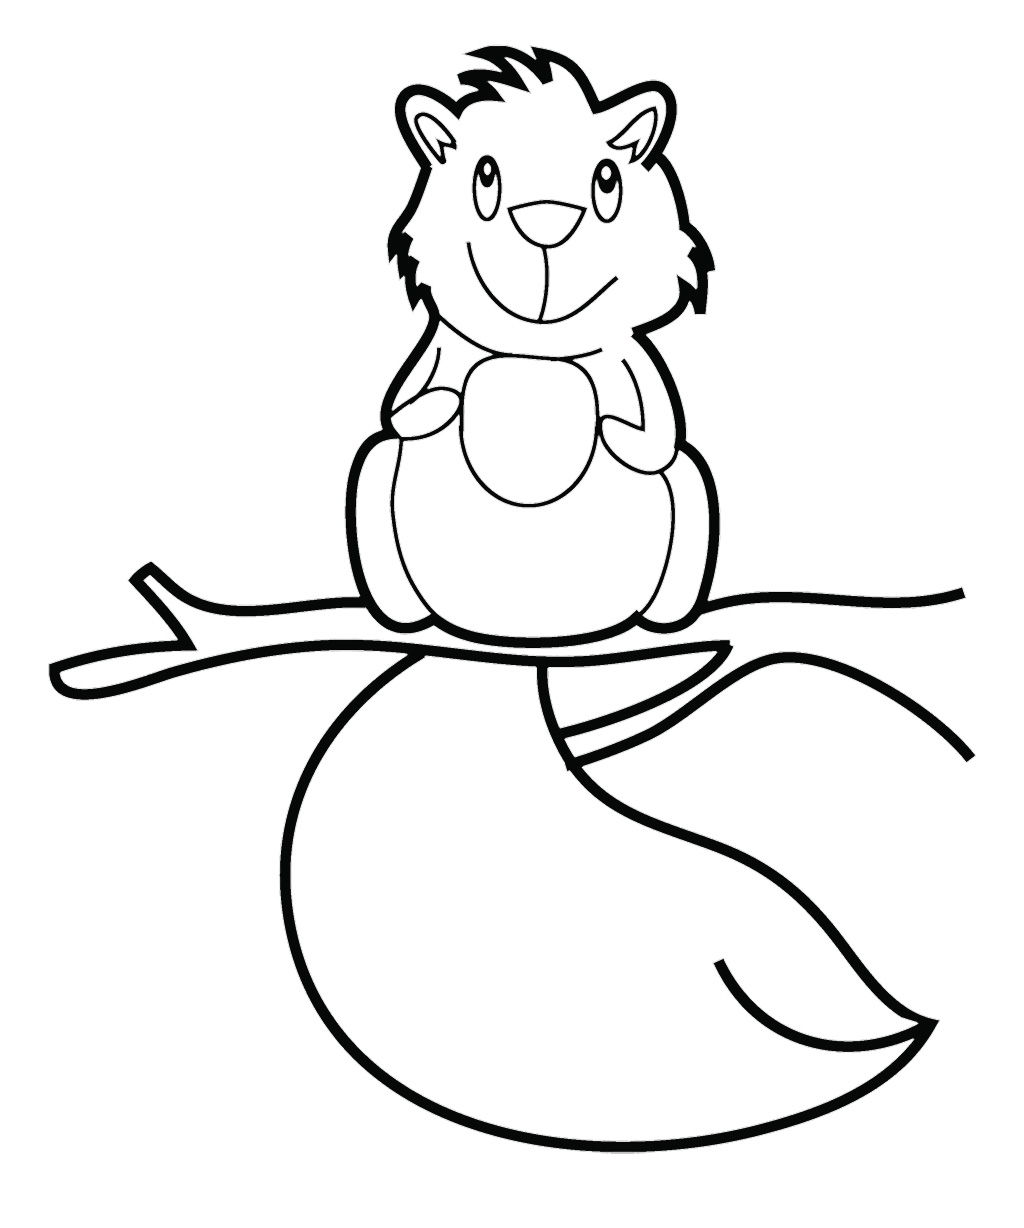 Free Flying Squirrel Coloring Page Download Free Clip Art